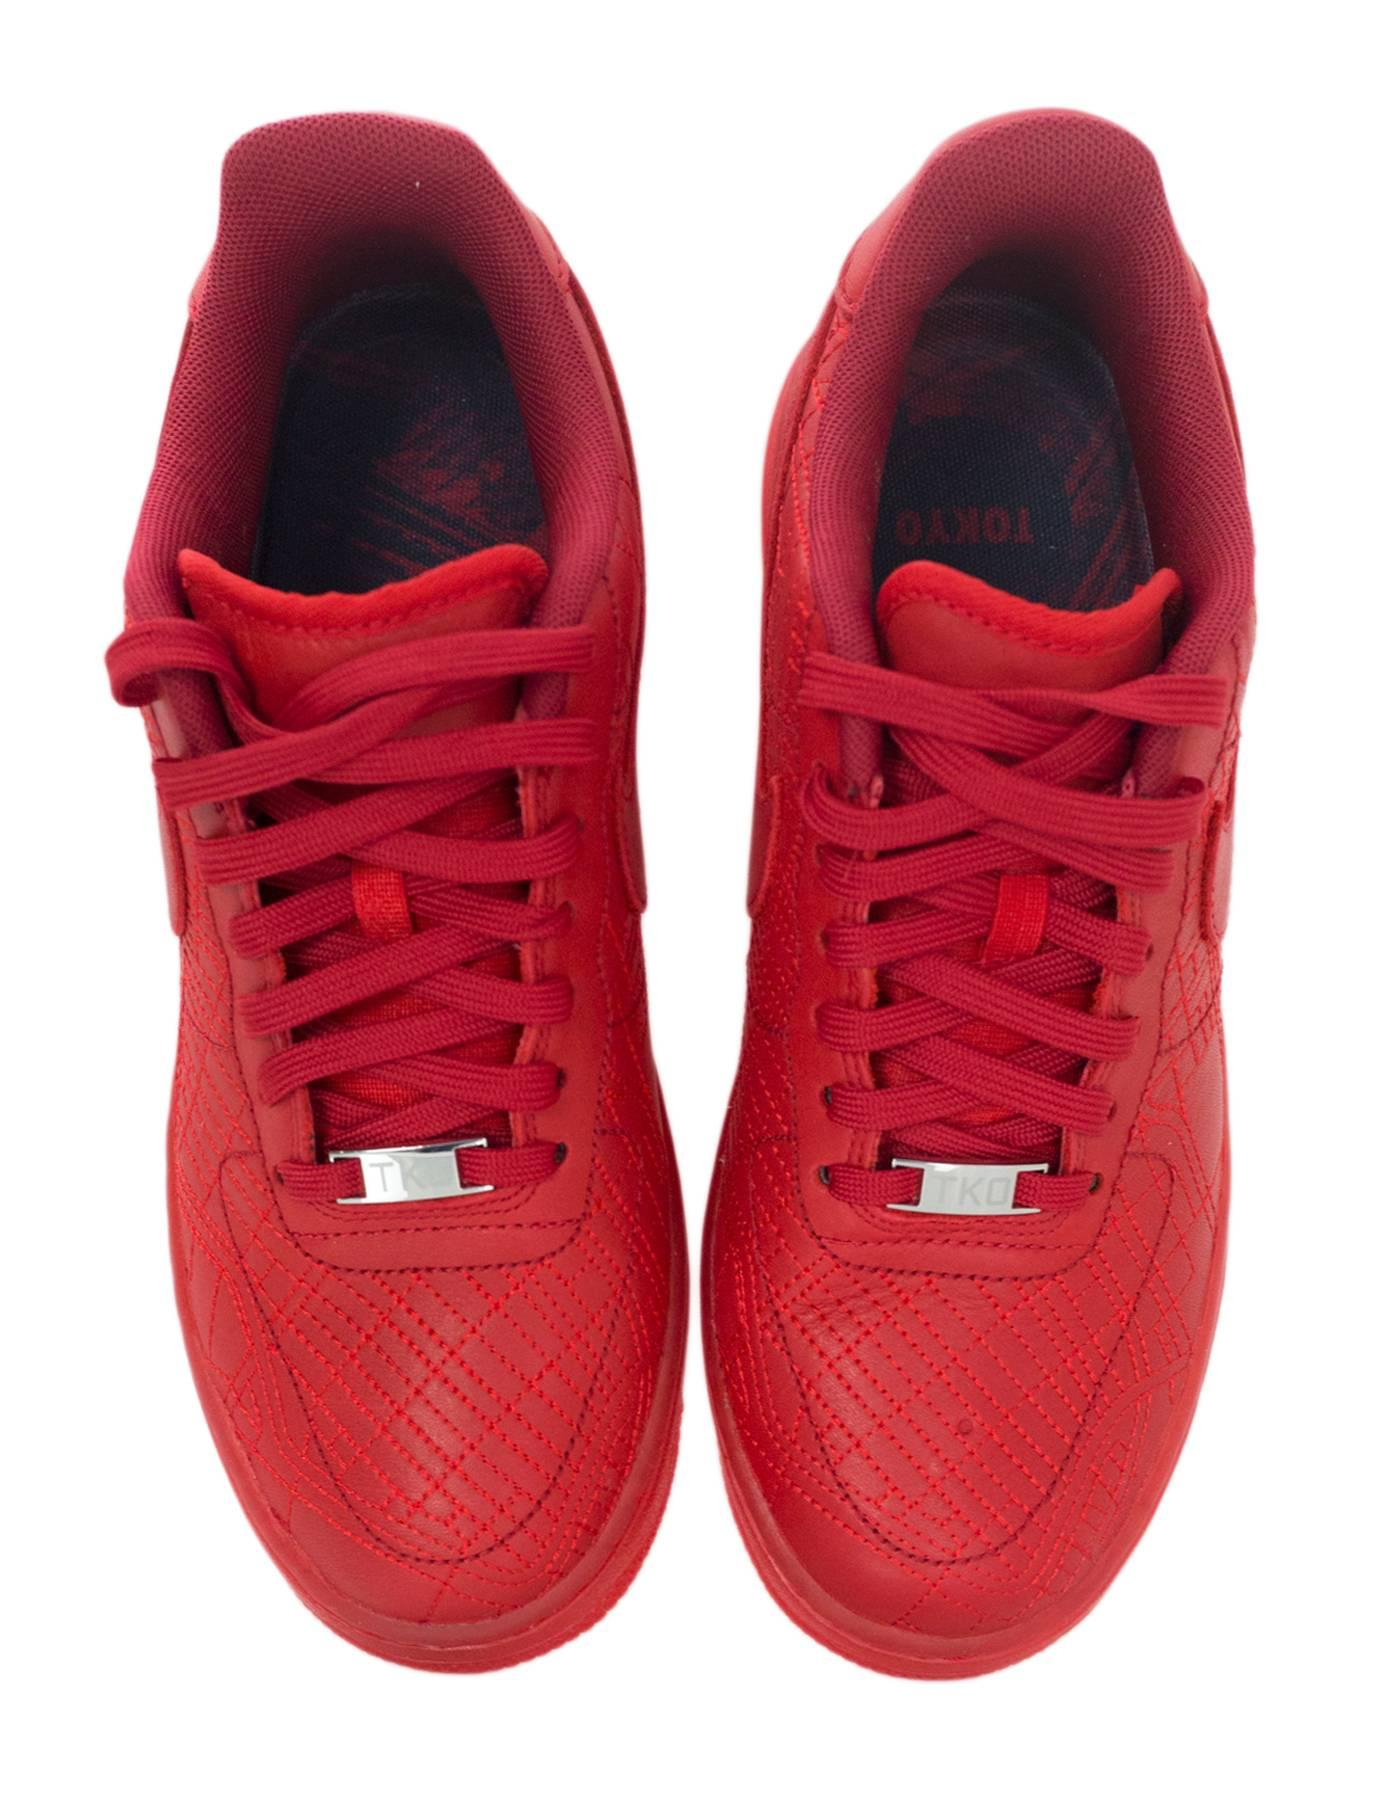 Wmns 1 Edition Collection Red Sneakers Limited Force Nike City Air Ybv7yf6g